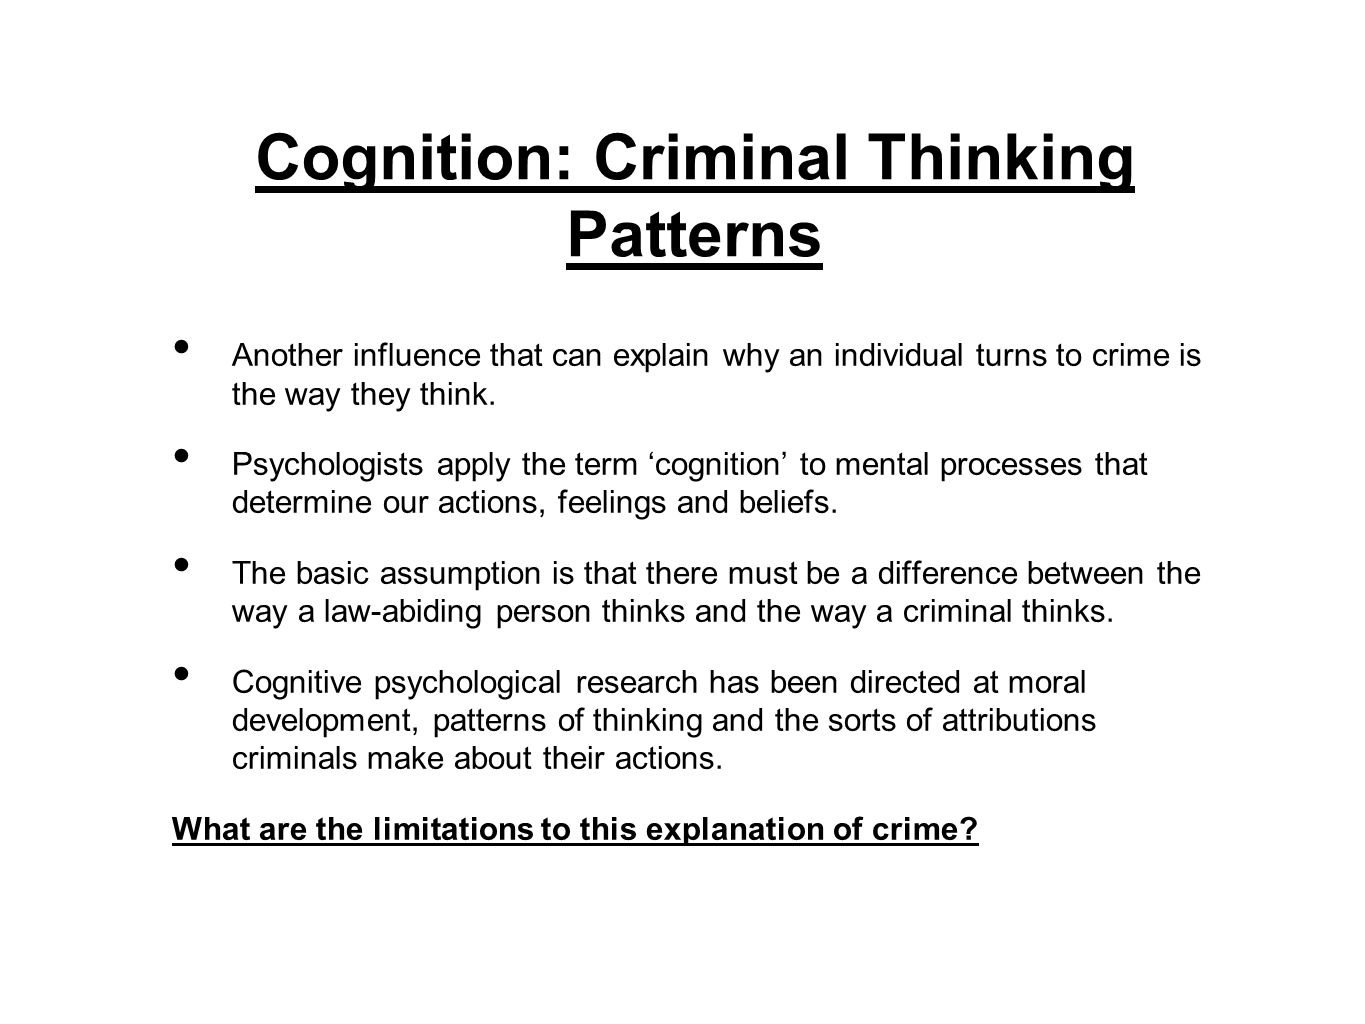 Free Will vs Determinism How far are cognitive factors under the control of the individual (free will) or are they predetermined by other factors (determinism) when someone has committed a crime.